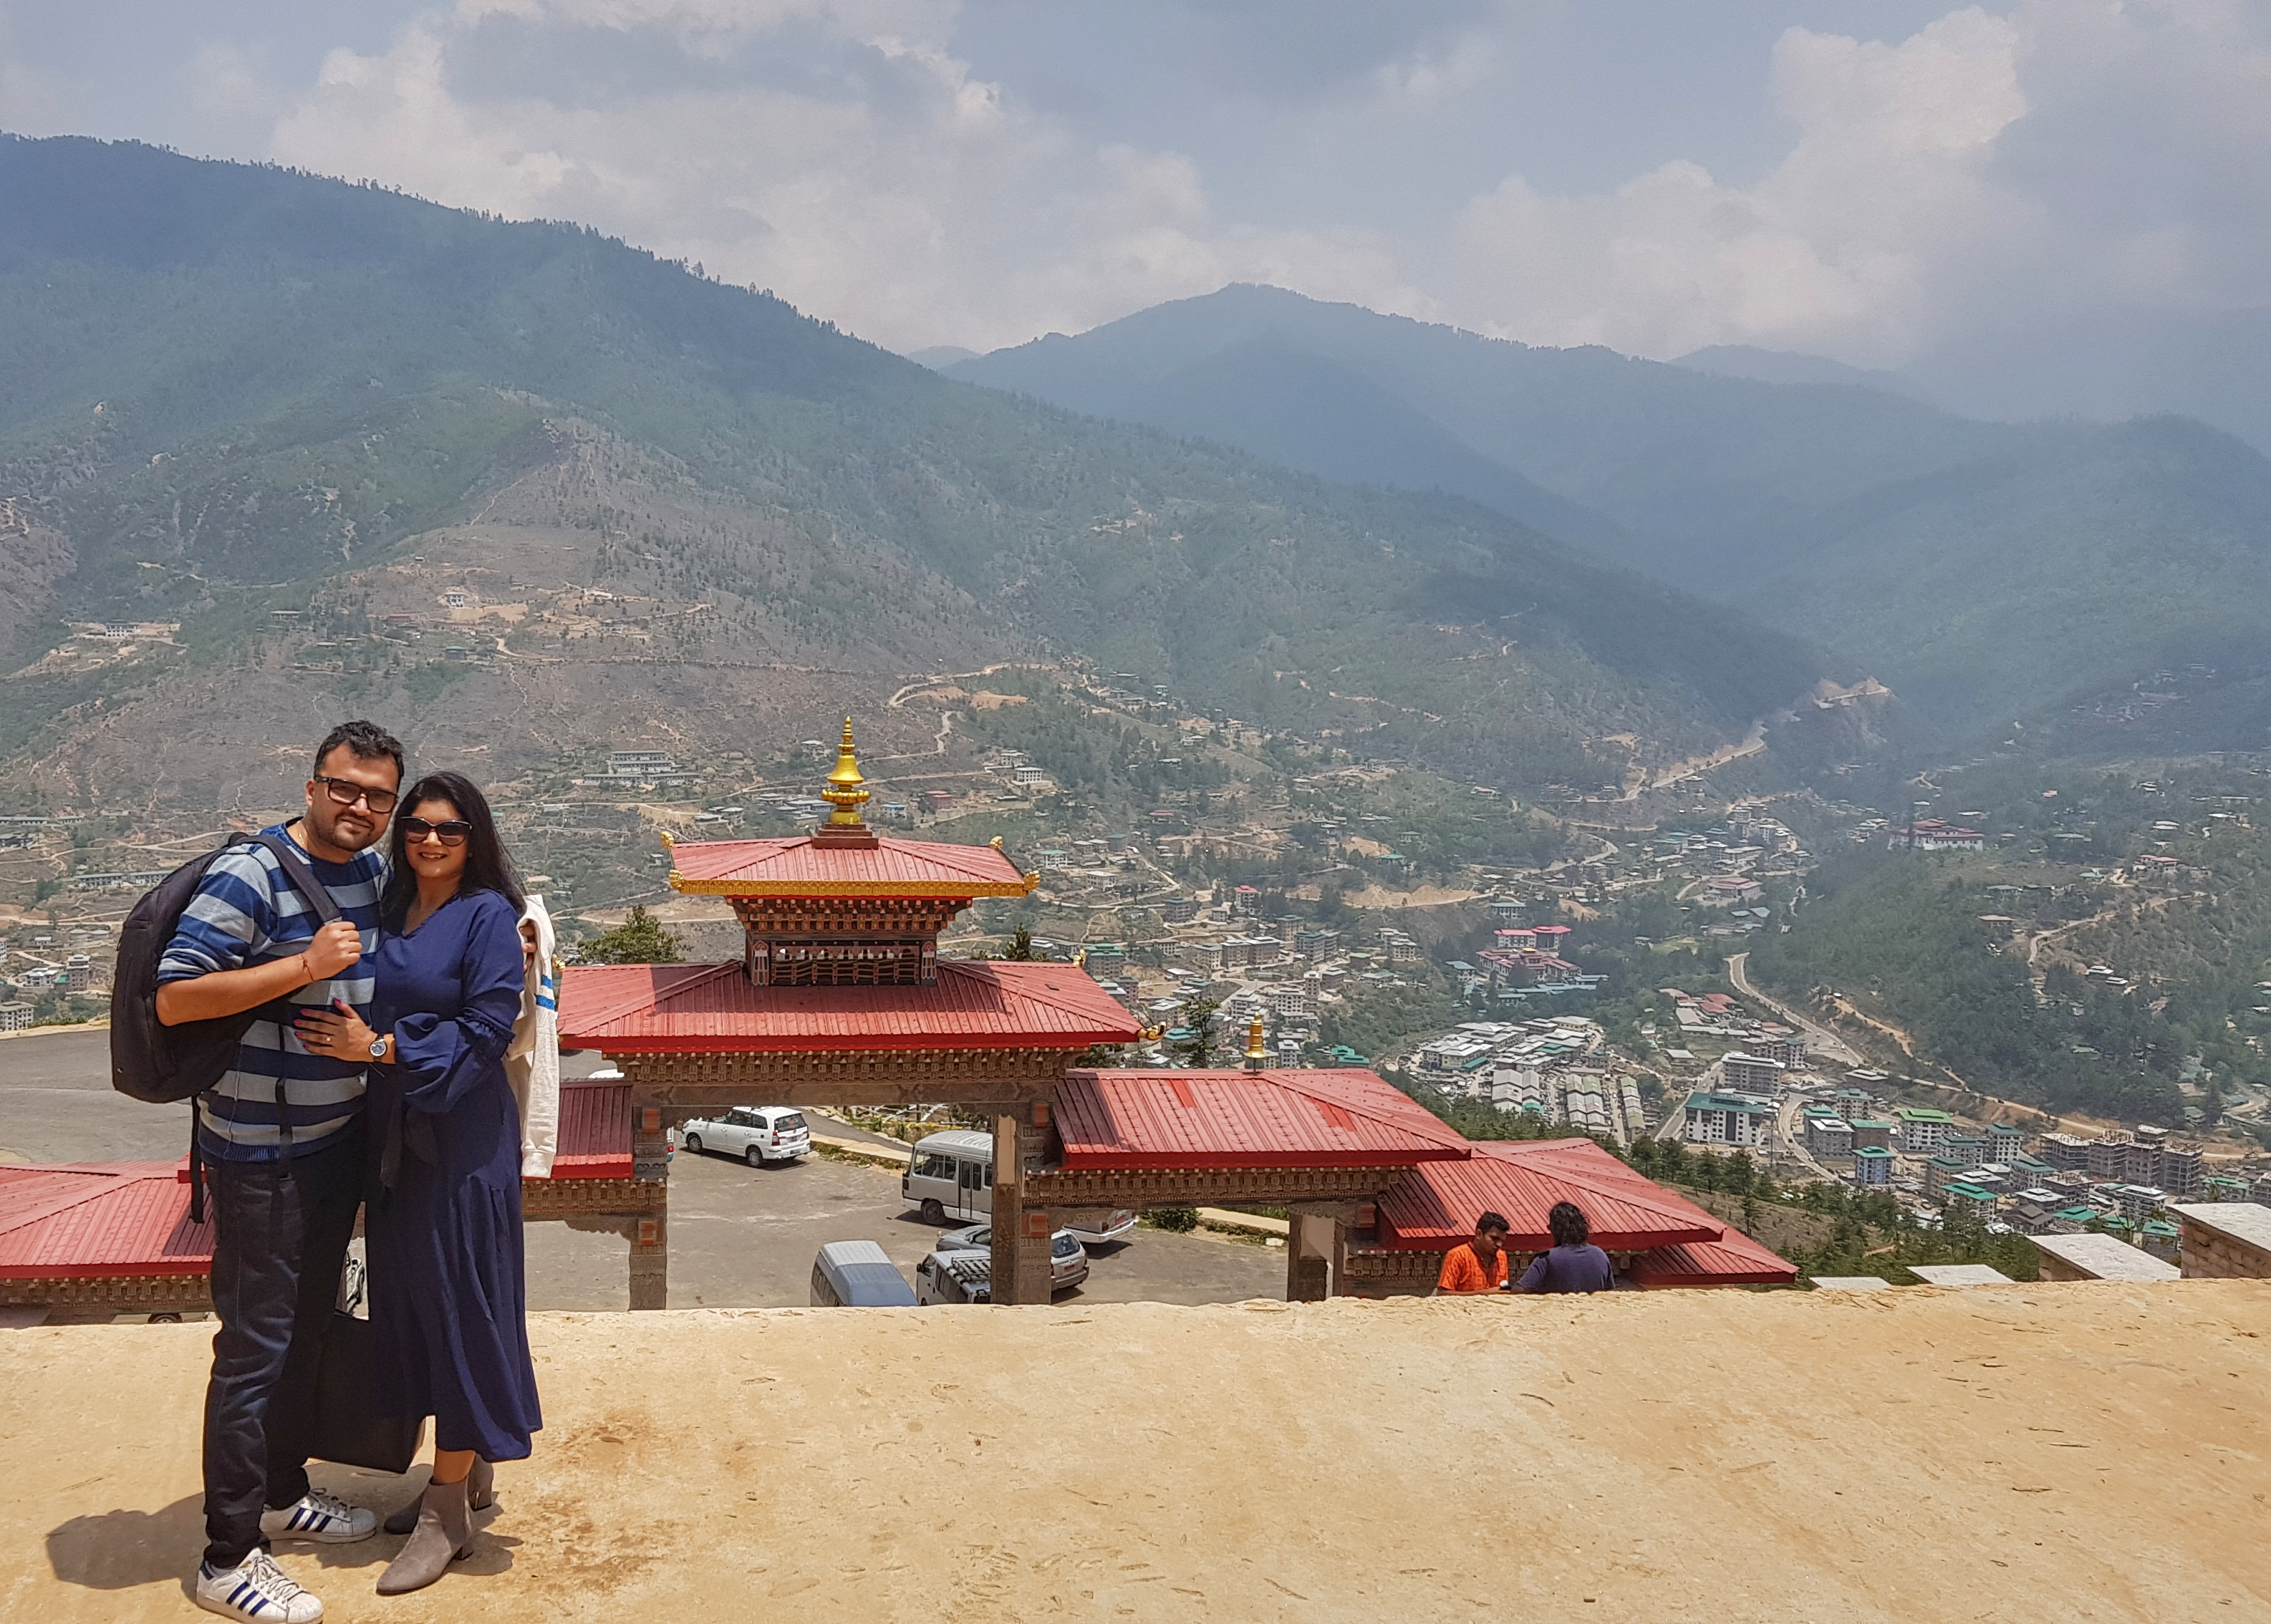 Bhutan 7 night 8 day itinerary